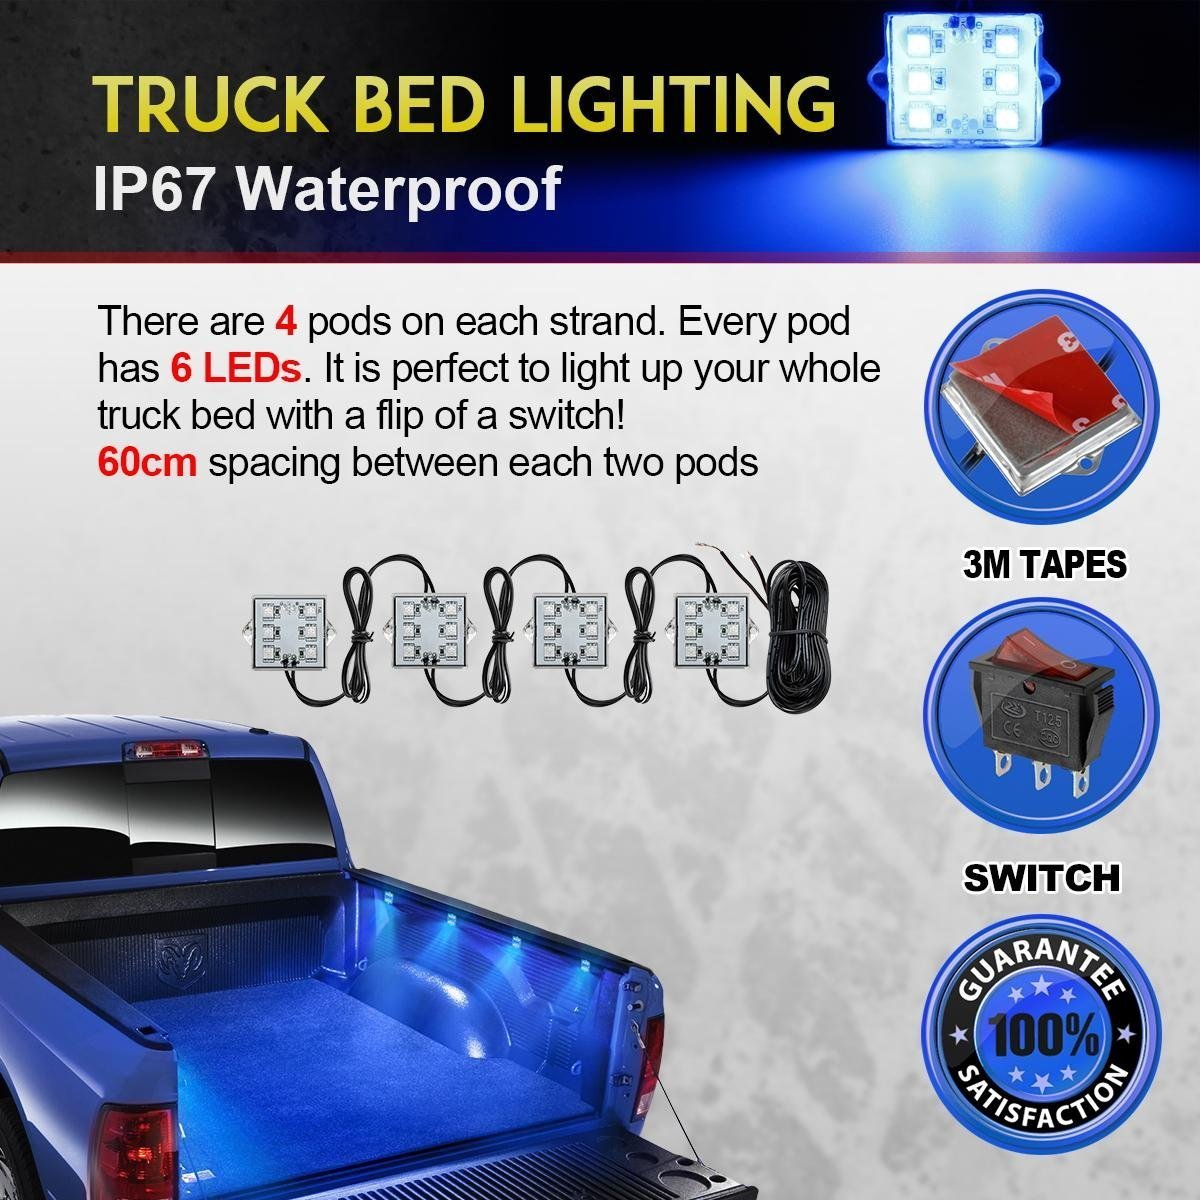 Partsam Truck Box Light 48-5050-SMD Blue LED Pickup Truck Bed Light Cargo Area Tail Light Fit All 12V Vehicles Replacement for GMC//Dodge Ram 1500 2500 3500